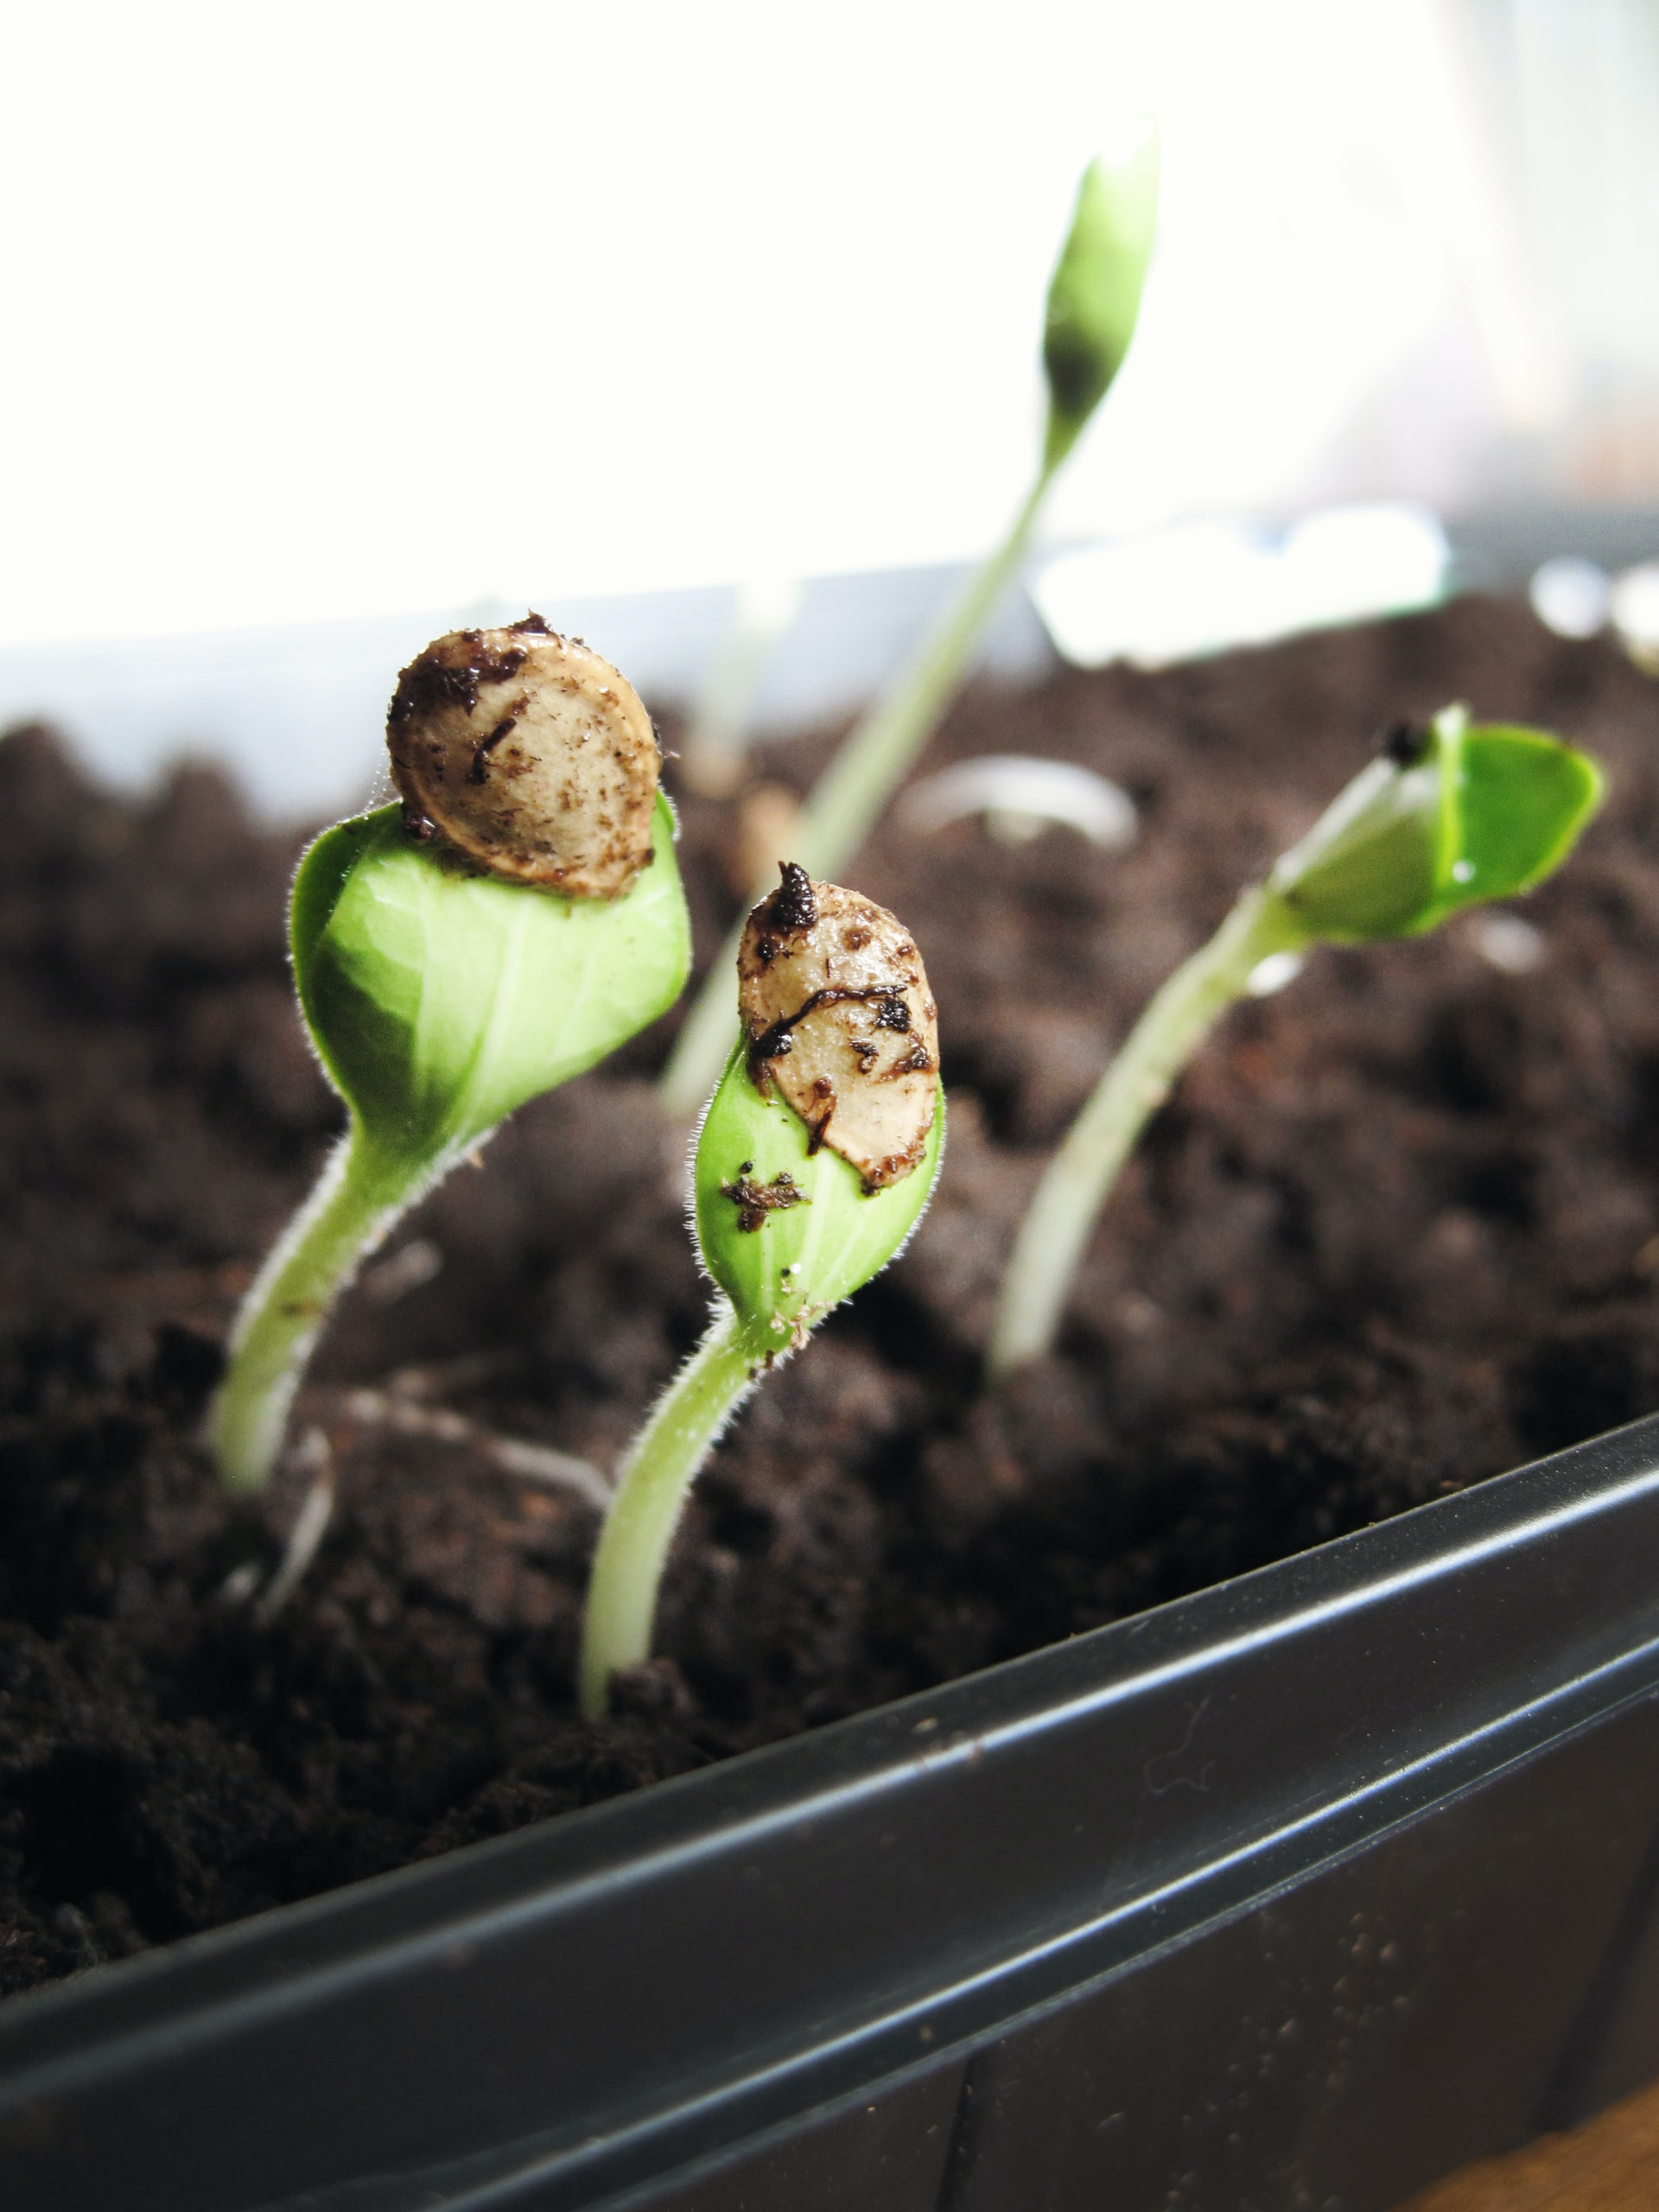 The three different types of cannabis seeds